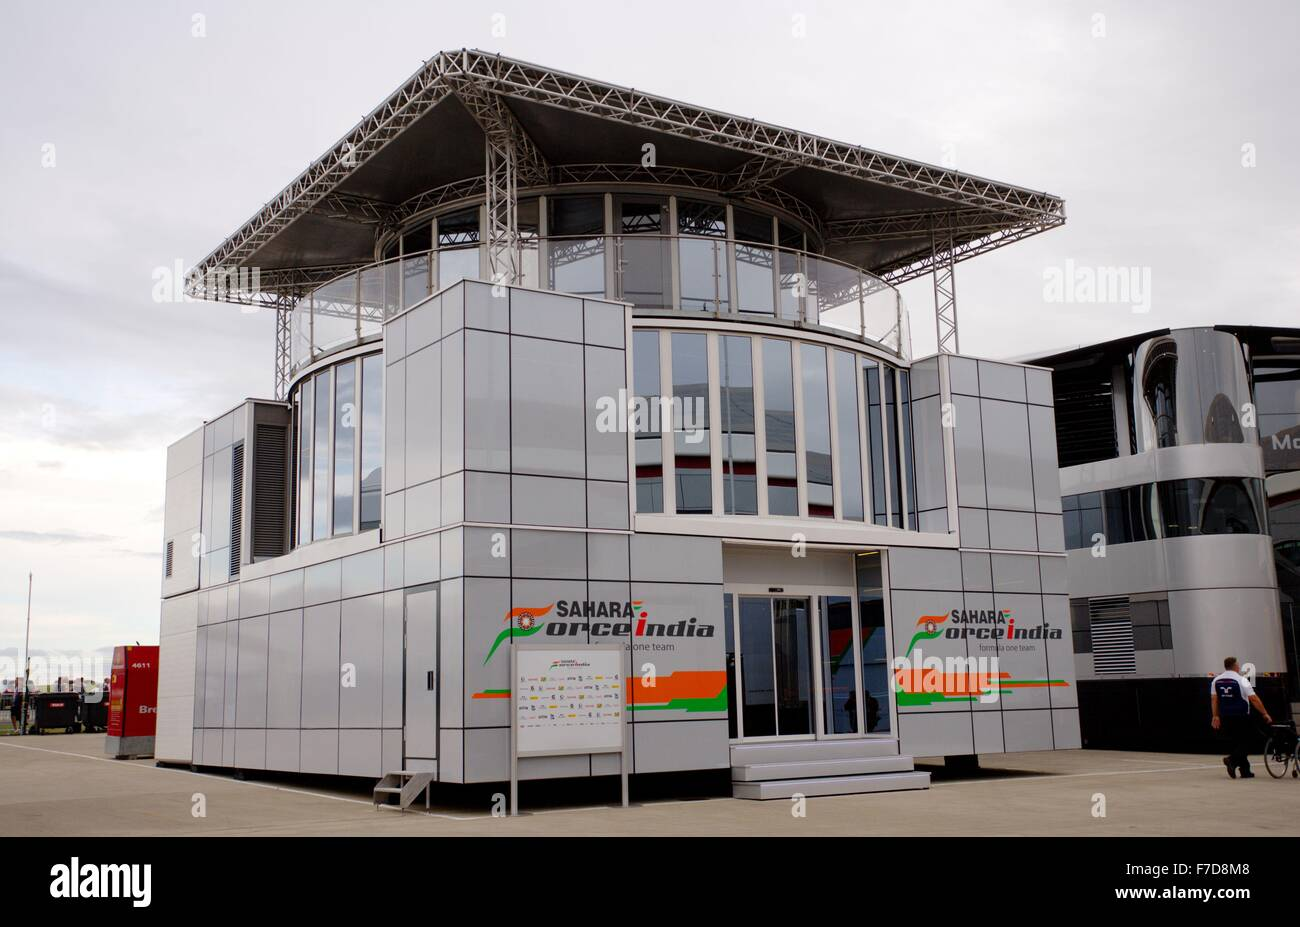 The Sahara Force India motorhome in the Paddock at Silverstone circuit. - Stock Image